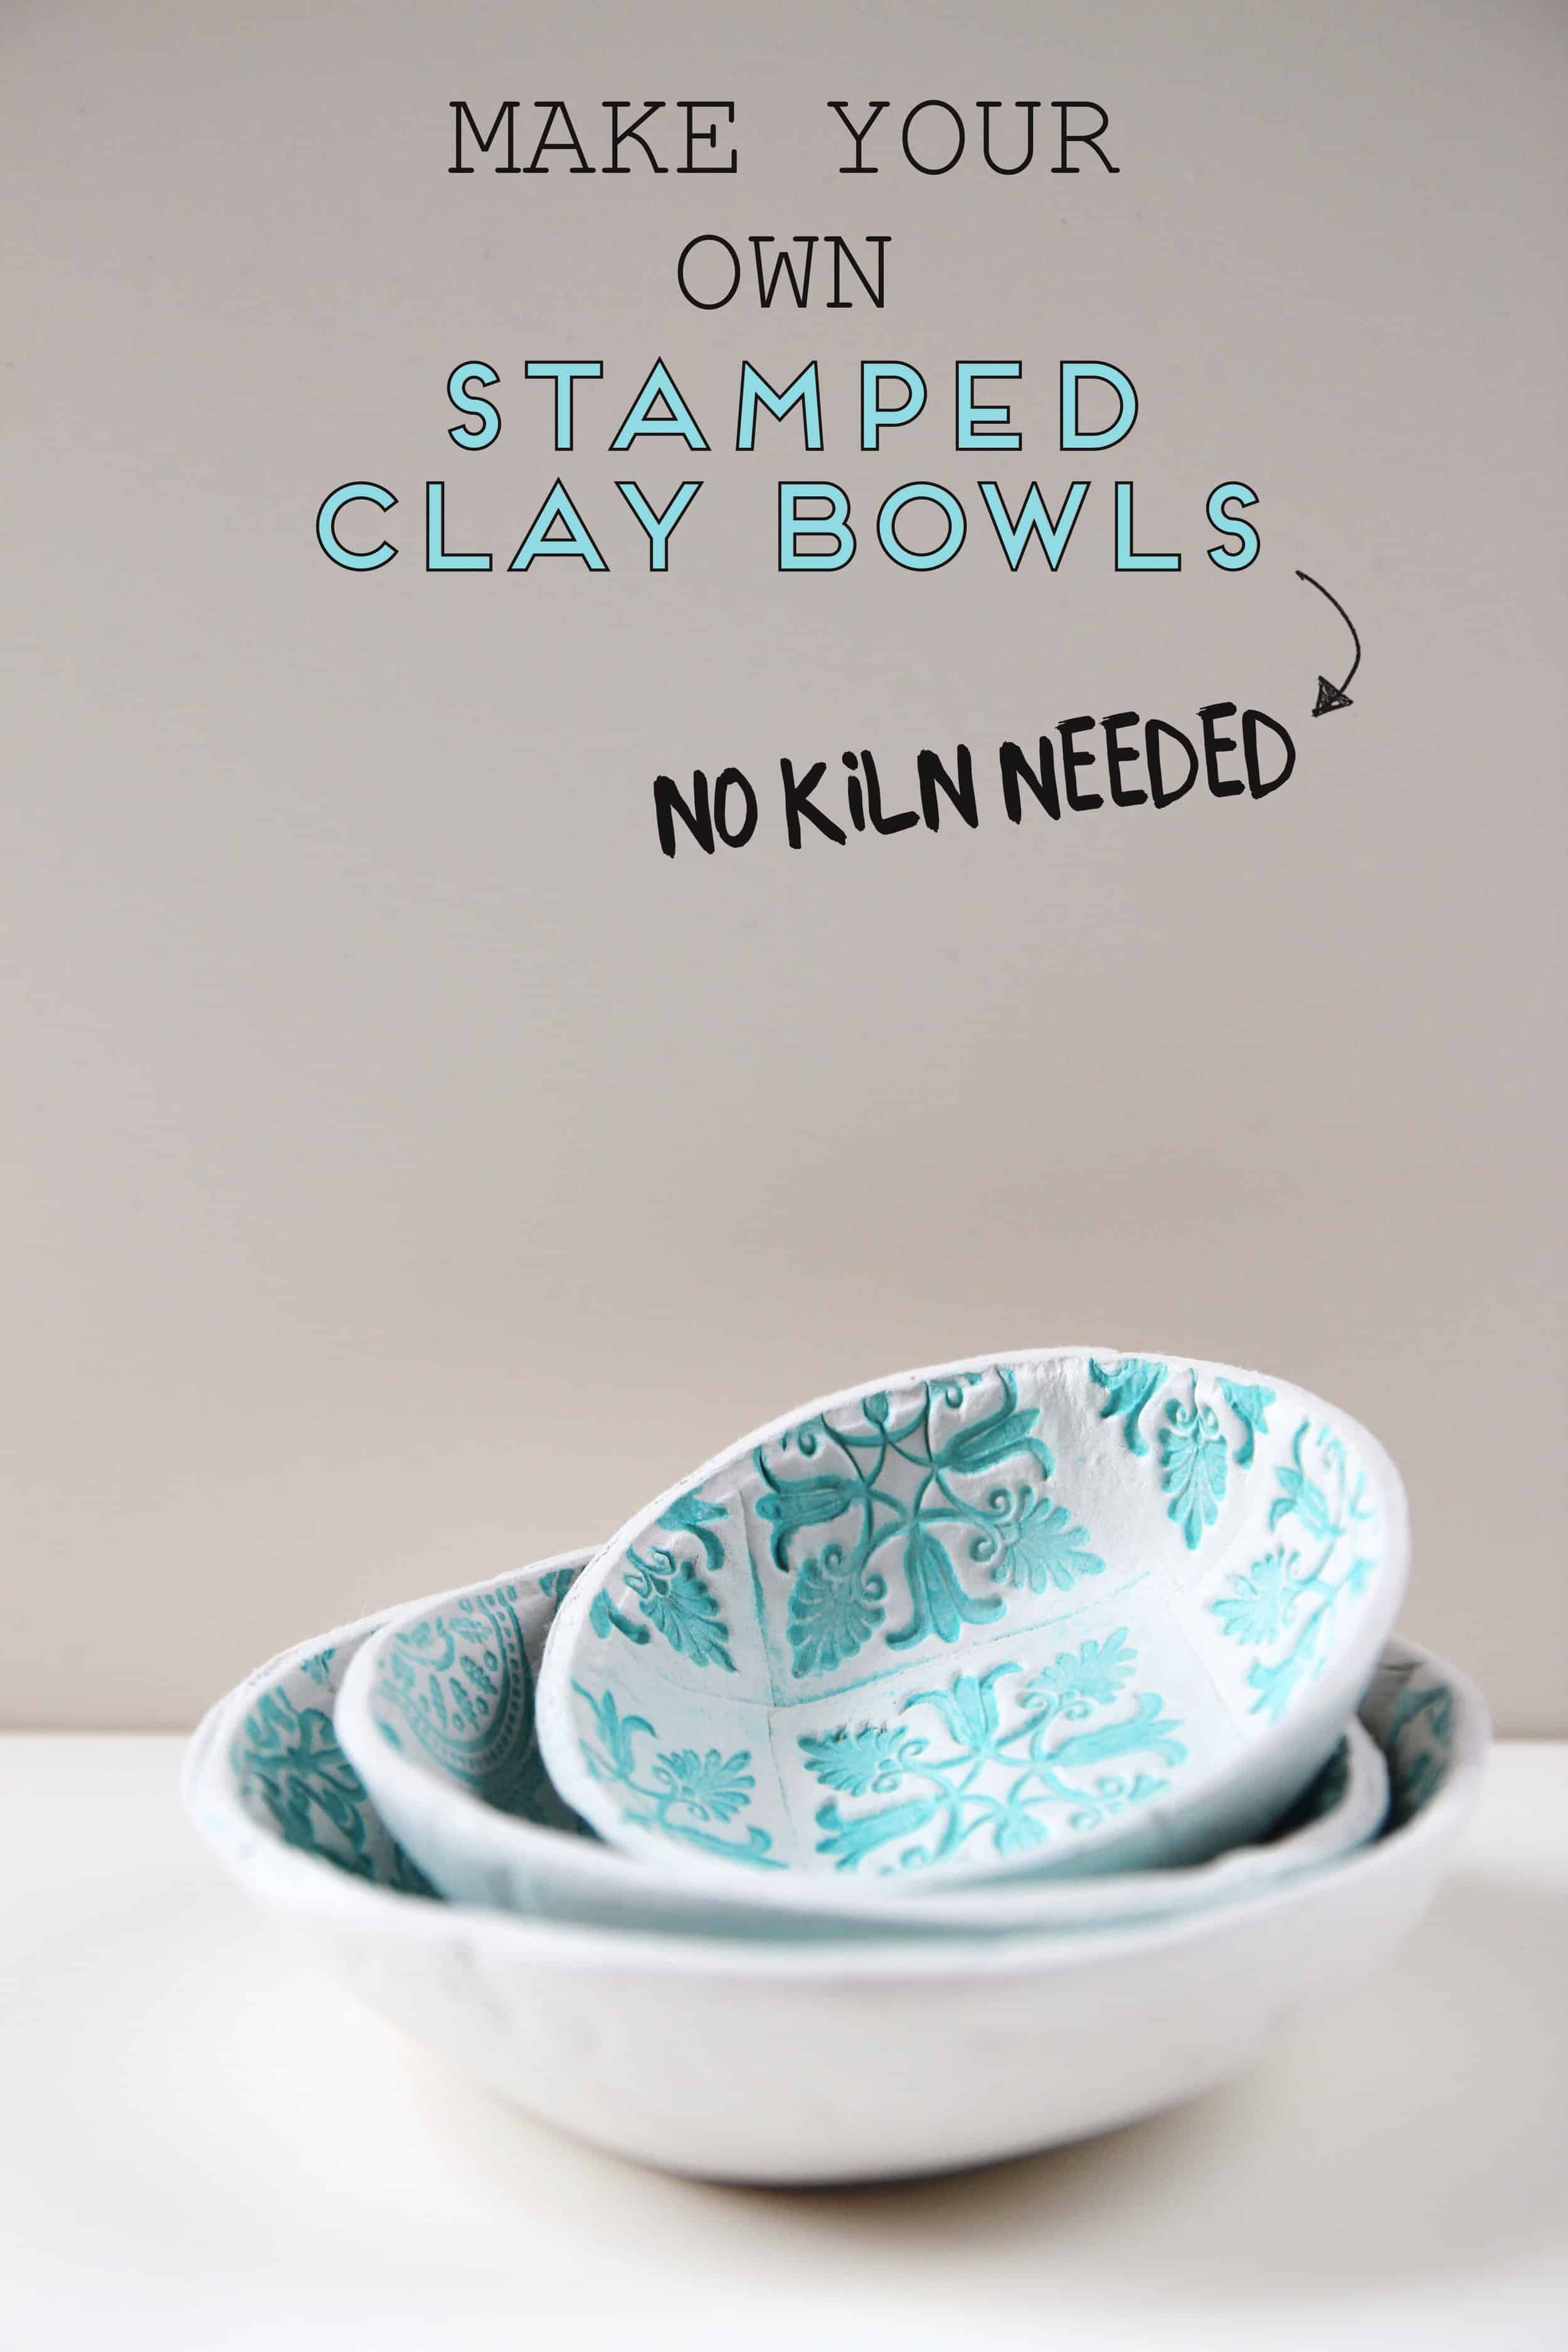 No kiln needed stamped clay bowls